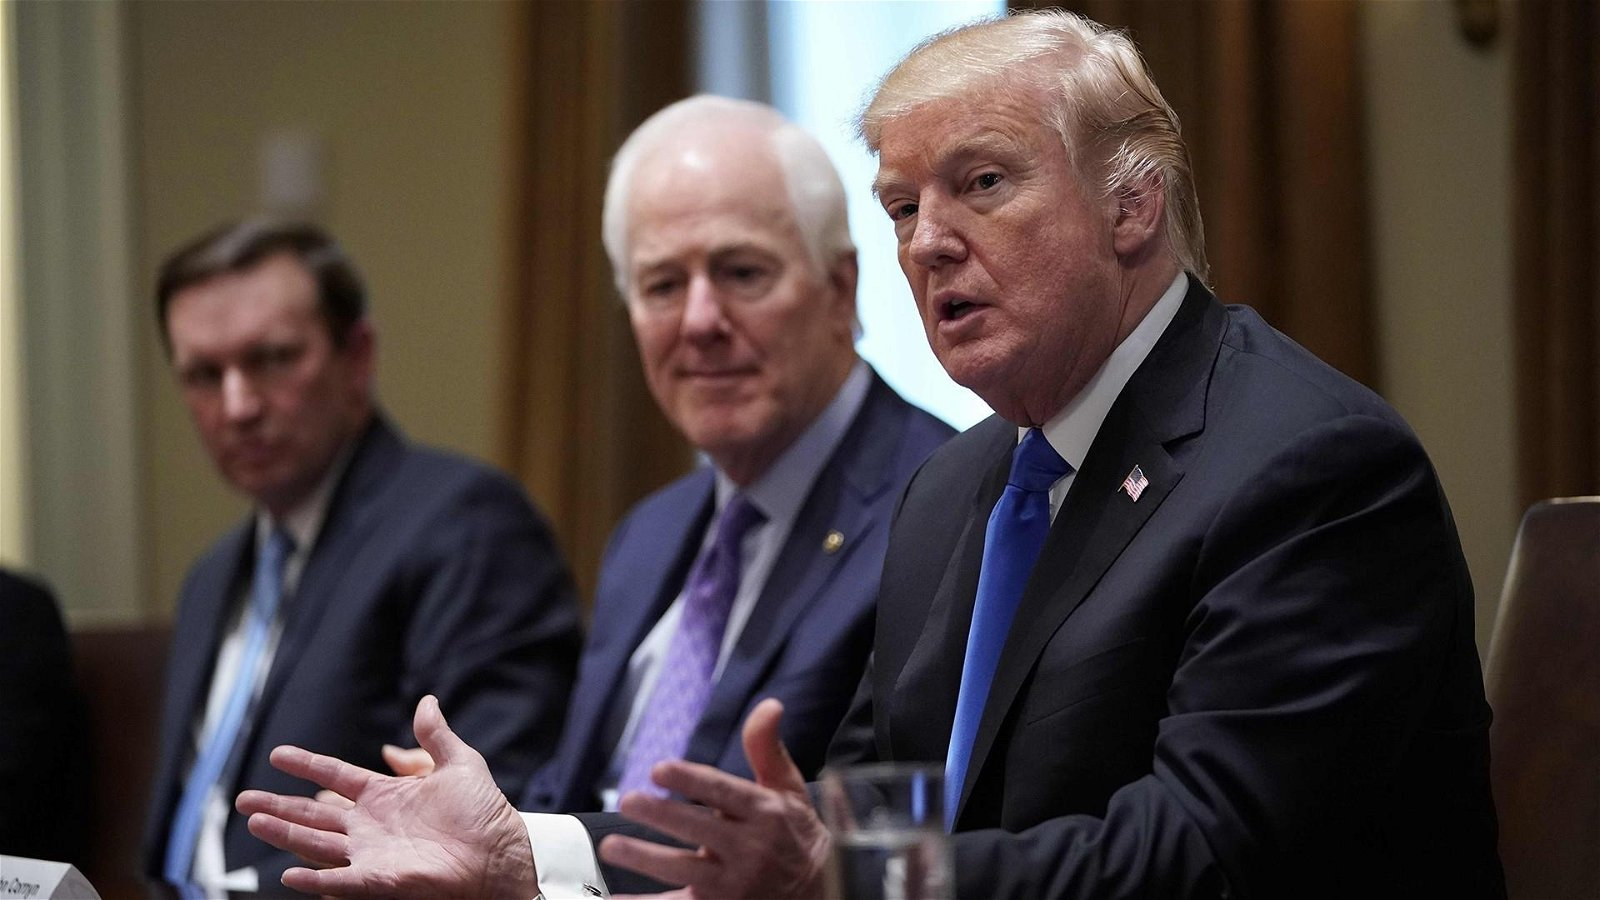 ESA Has Not Heard From Trump About Meeting